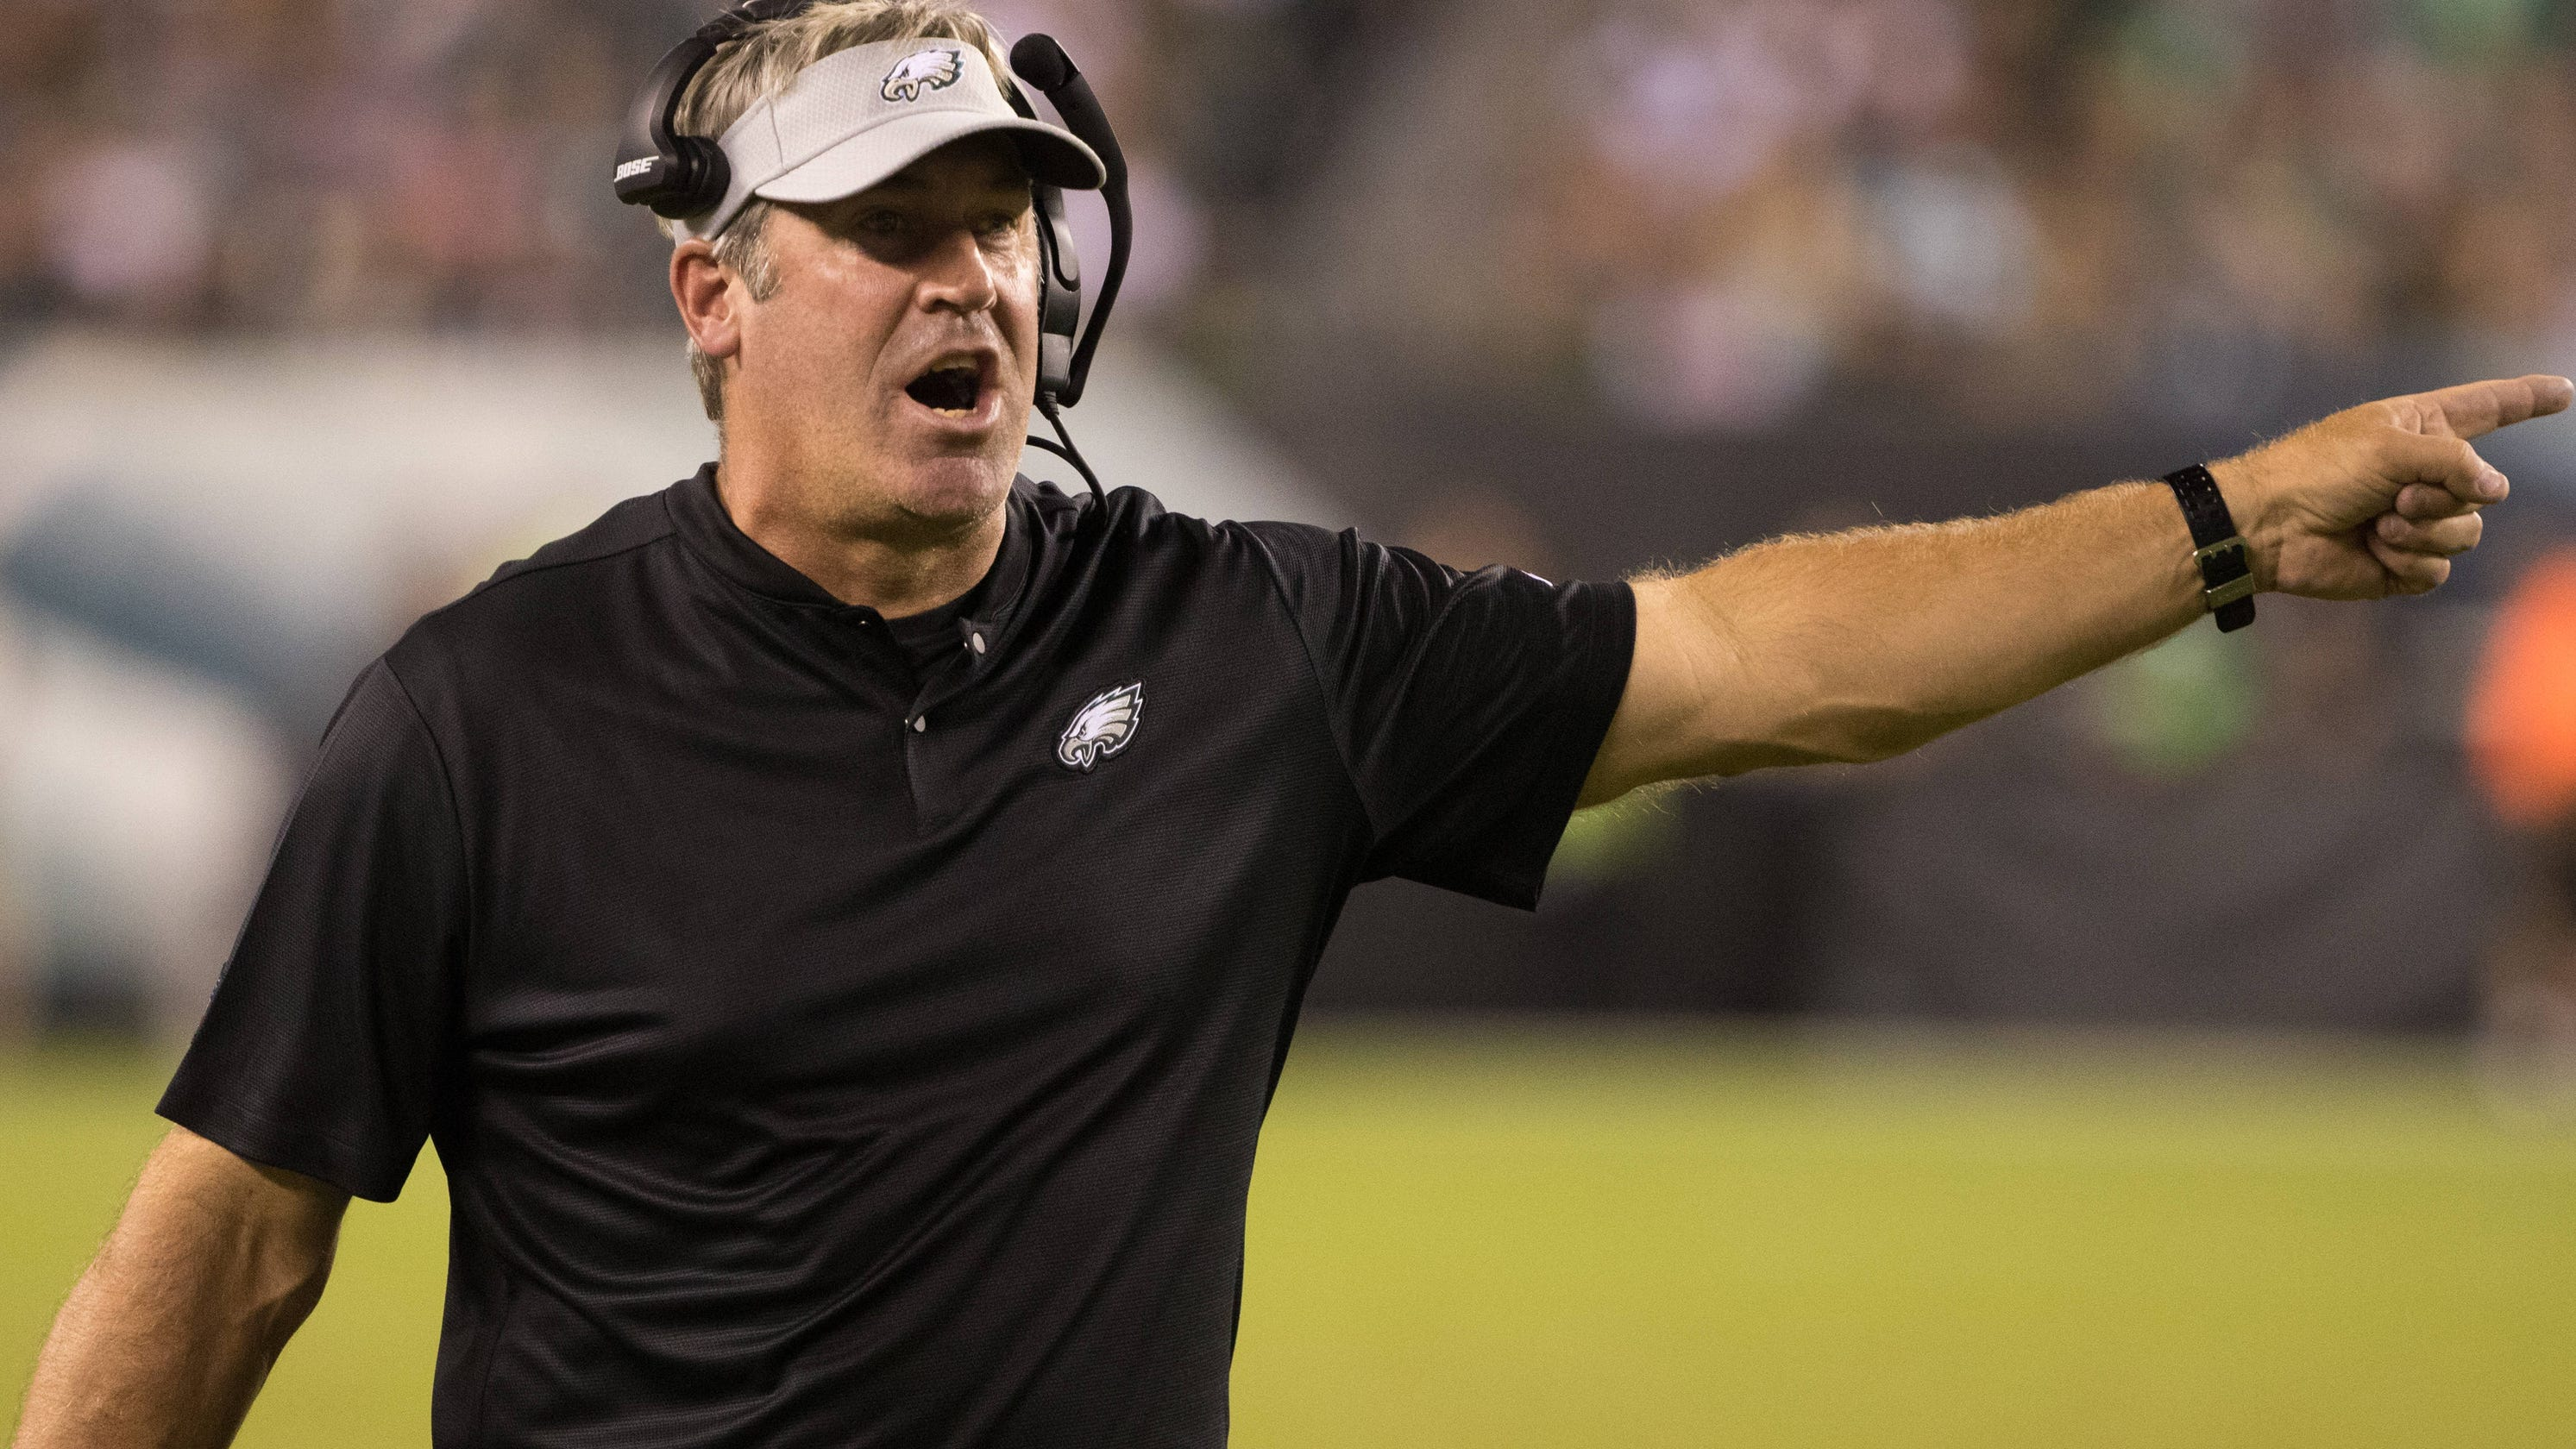 doug pederson - photo #14